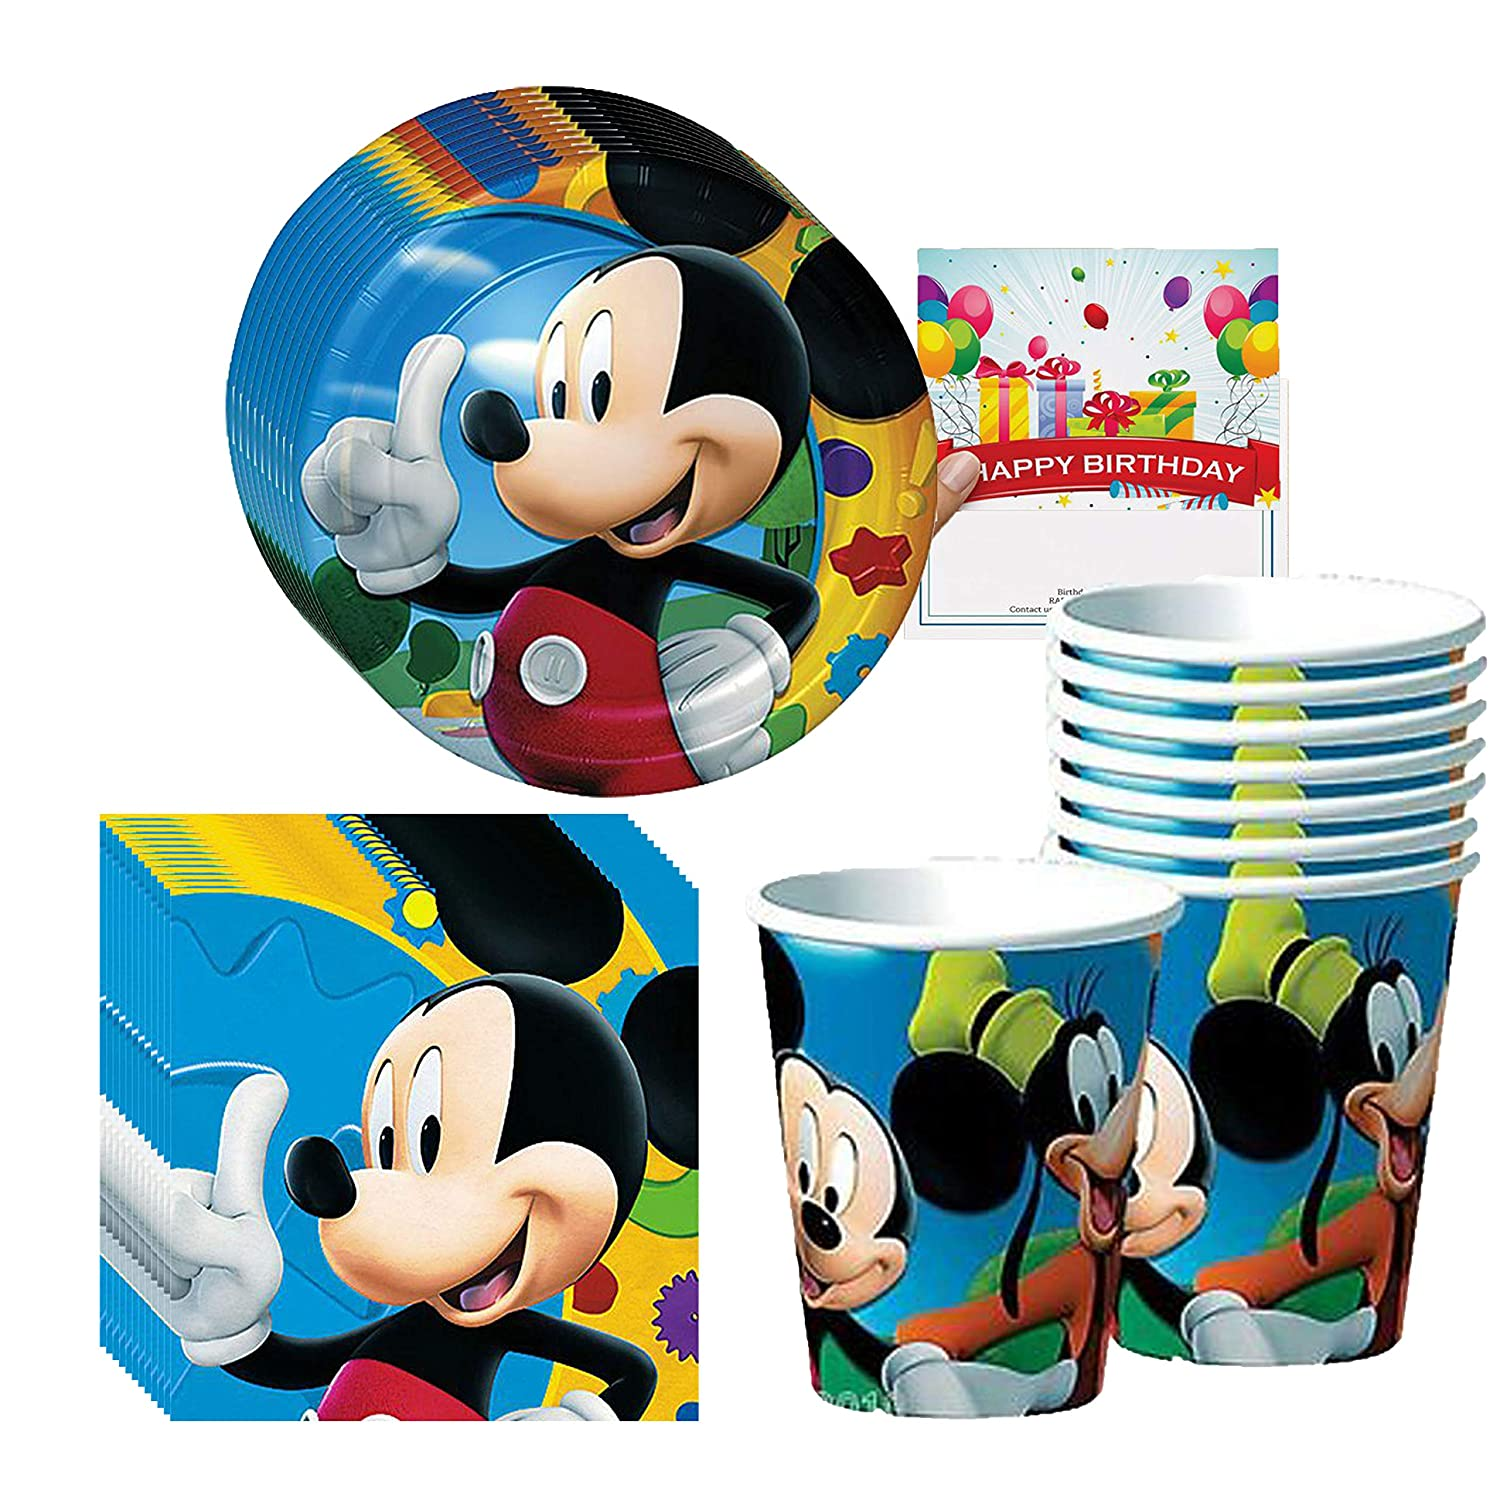 Amazon.com: Mickey Party Supplies - Juego de vasos, platos y ...